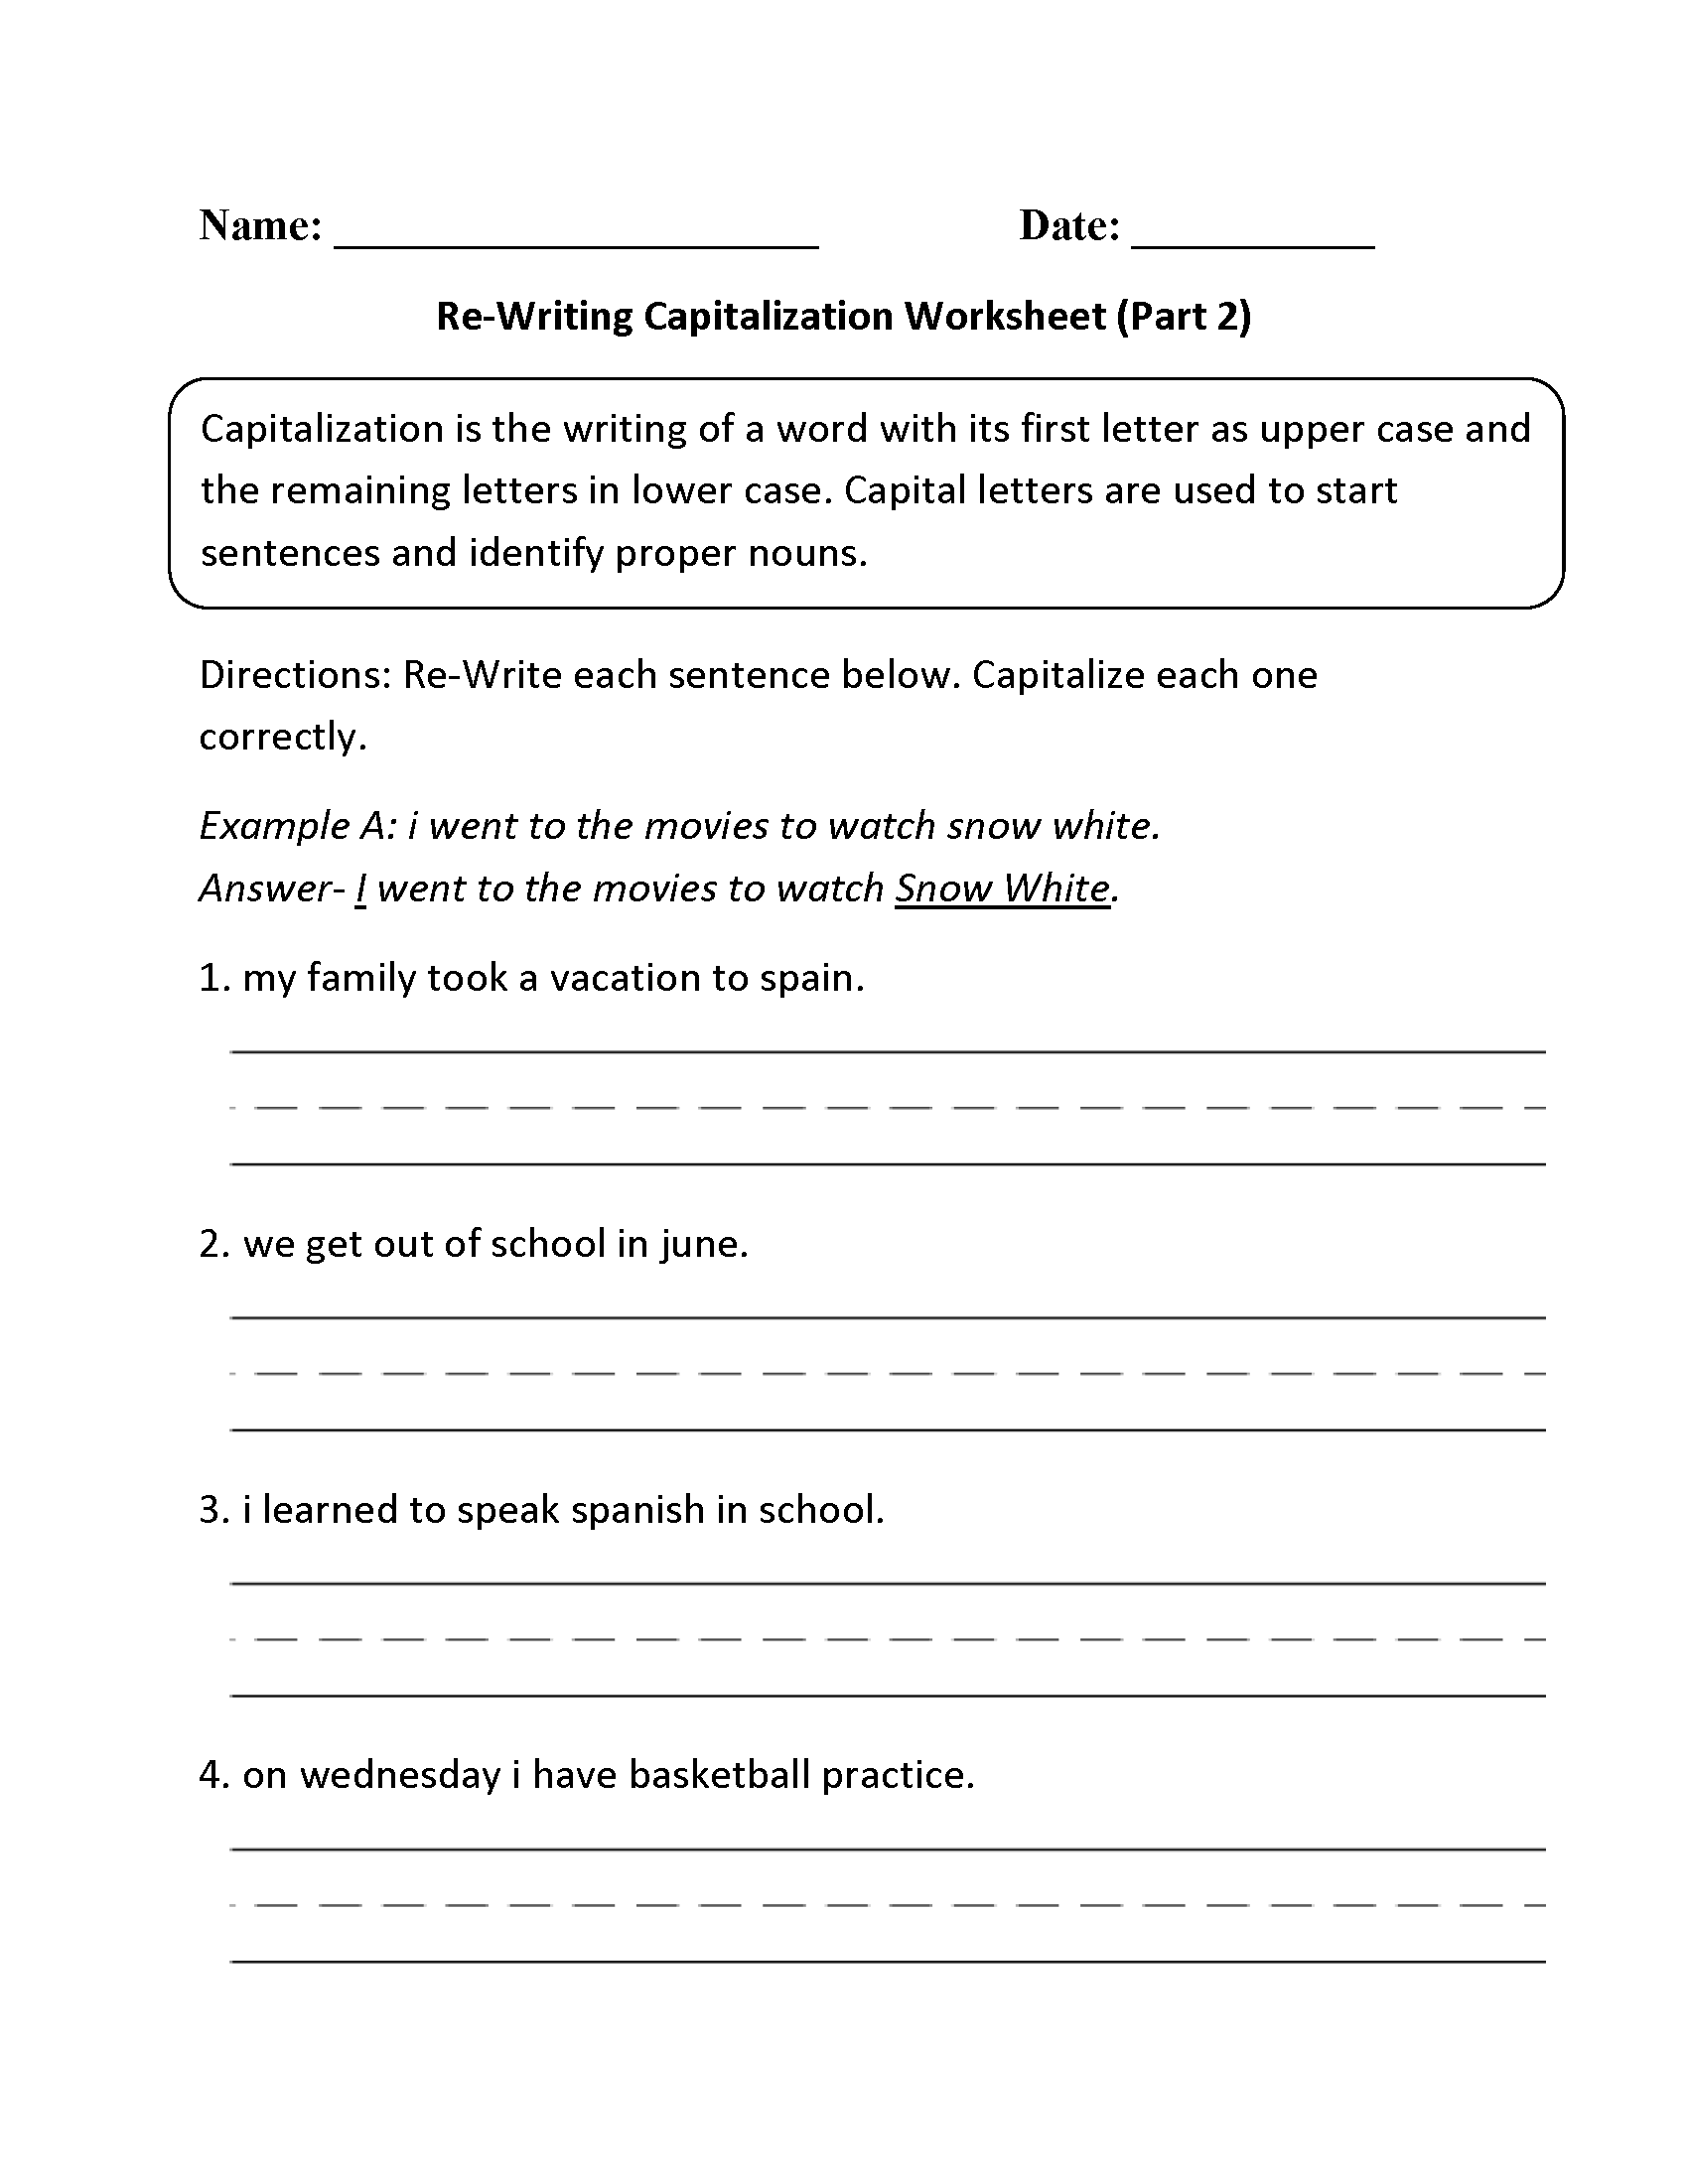 Free Worksheet Free Capitalization Worksheets englishlinx com capitalization worksheets re writing worksheet part 2